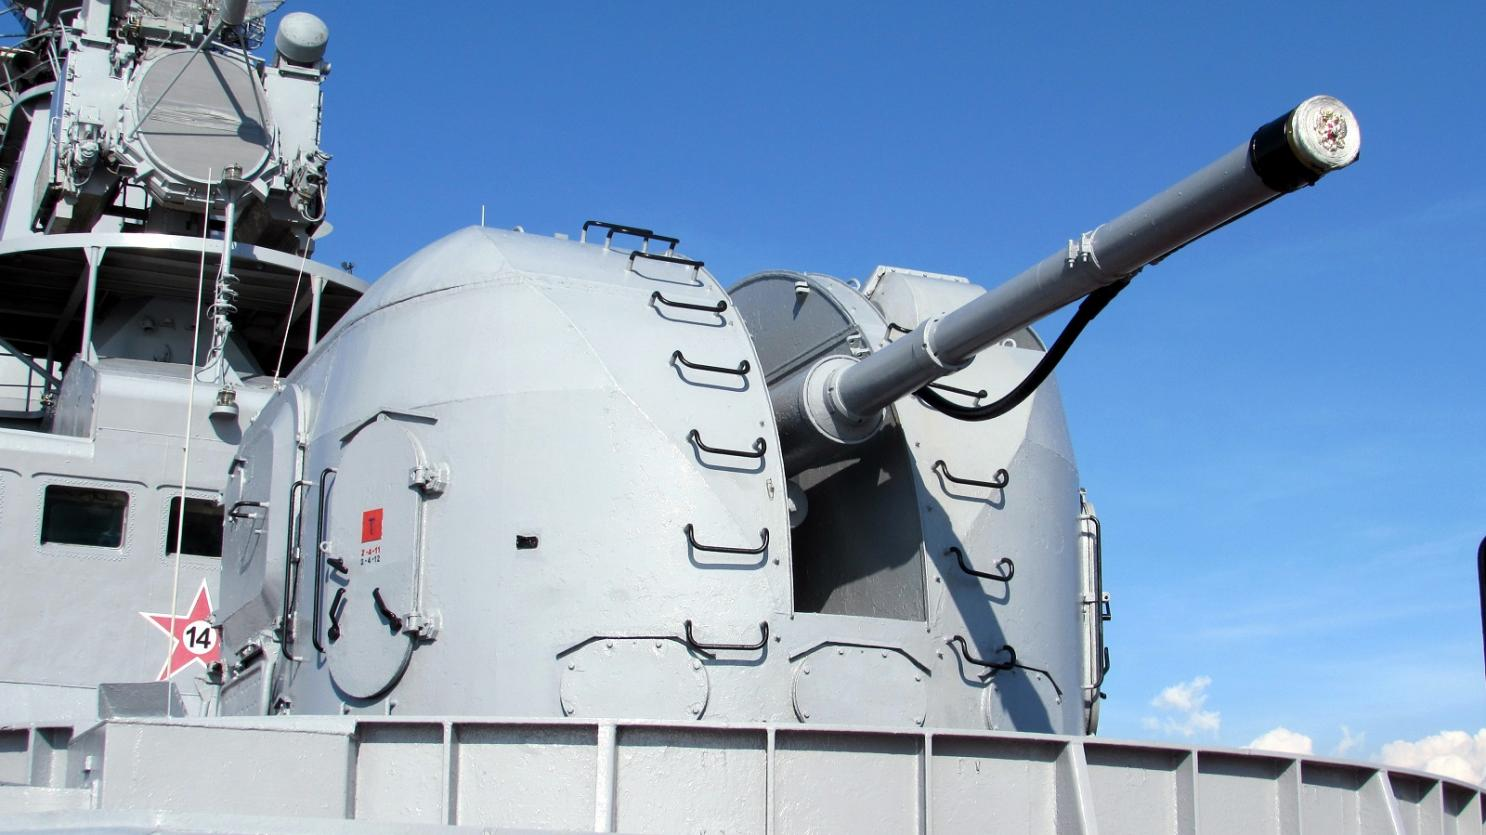 The Combat Capacity Of The Russian Navy Is Only 45% Of That Of The US Navy